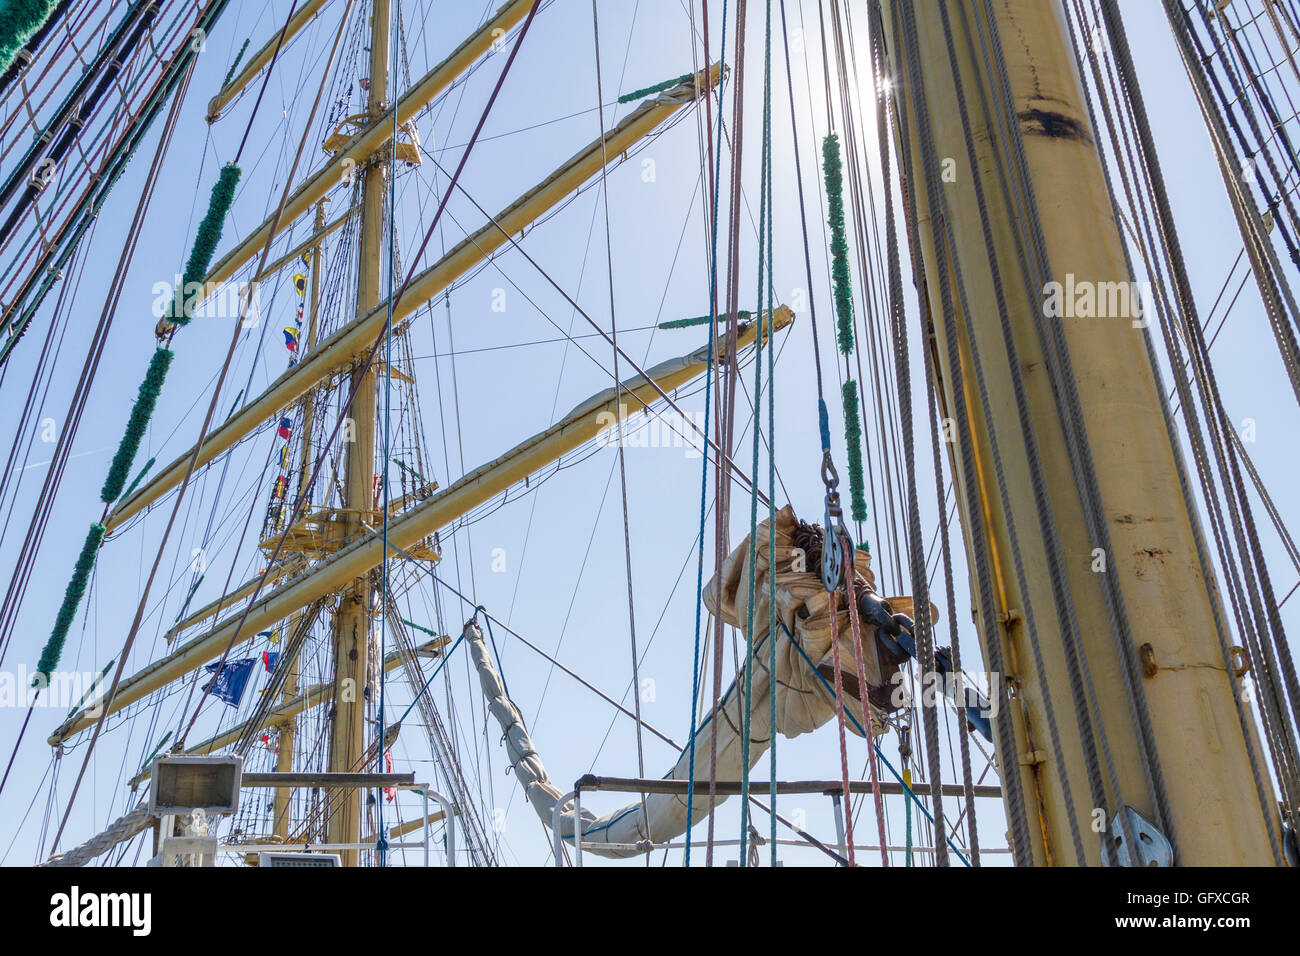 Detail shot of masts and rigging and the morning sun on square-rigged ship Mir (Peace) in Russian - Stock Image